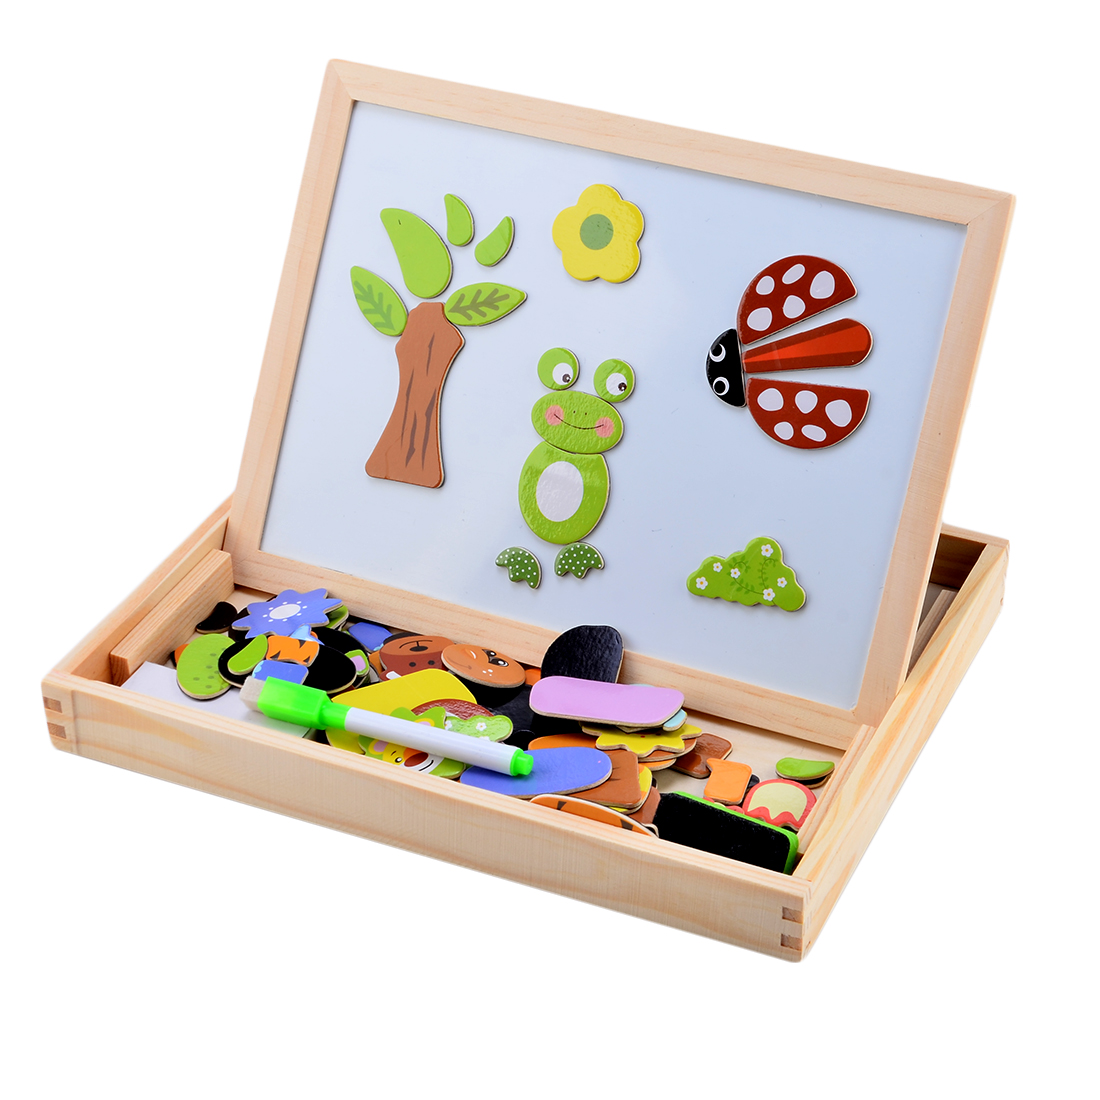 fantastic wooden toys magnetic puzzle multifunction writing drawing  education wooden animal toys board for kids